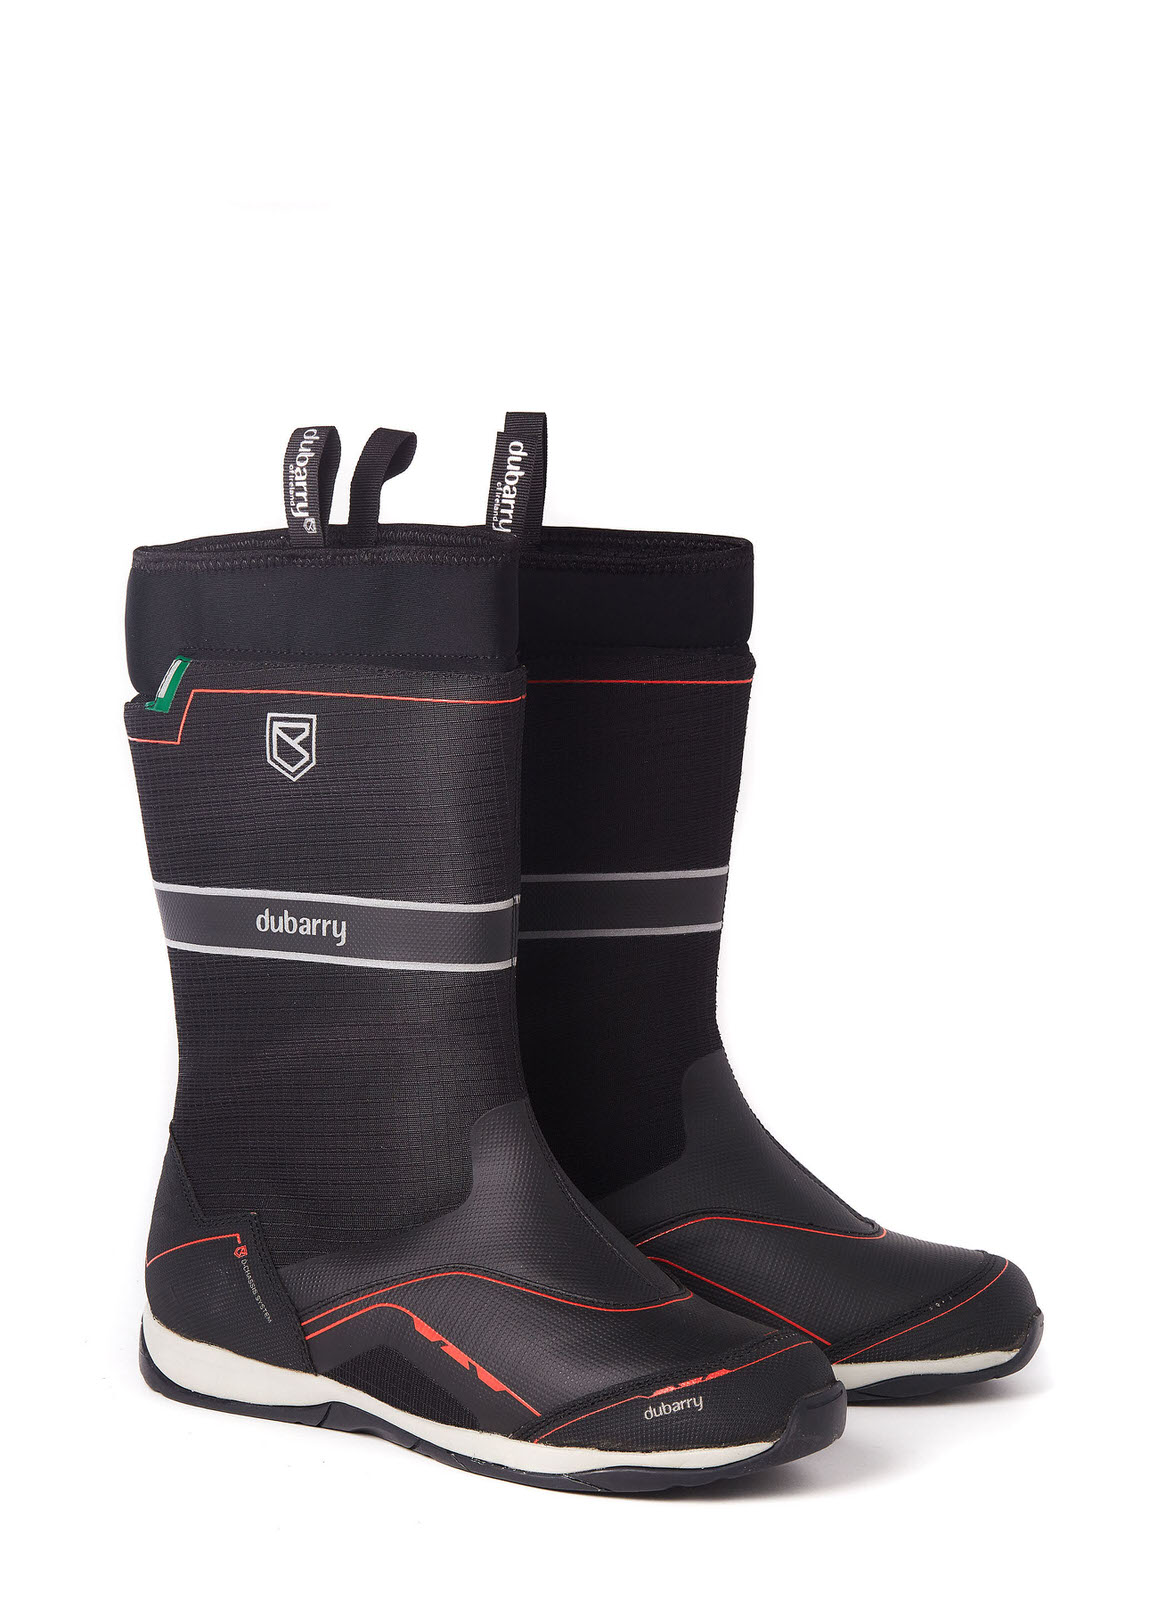 Fastnet Sailing Boot - Black